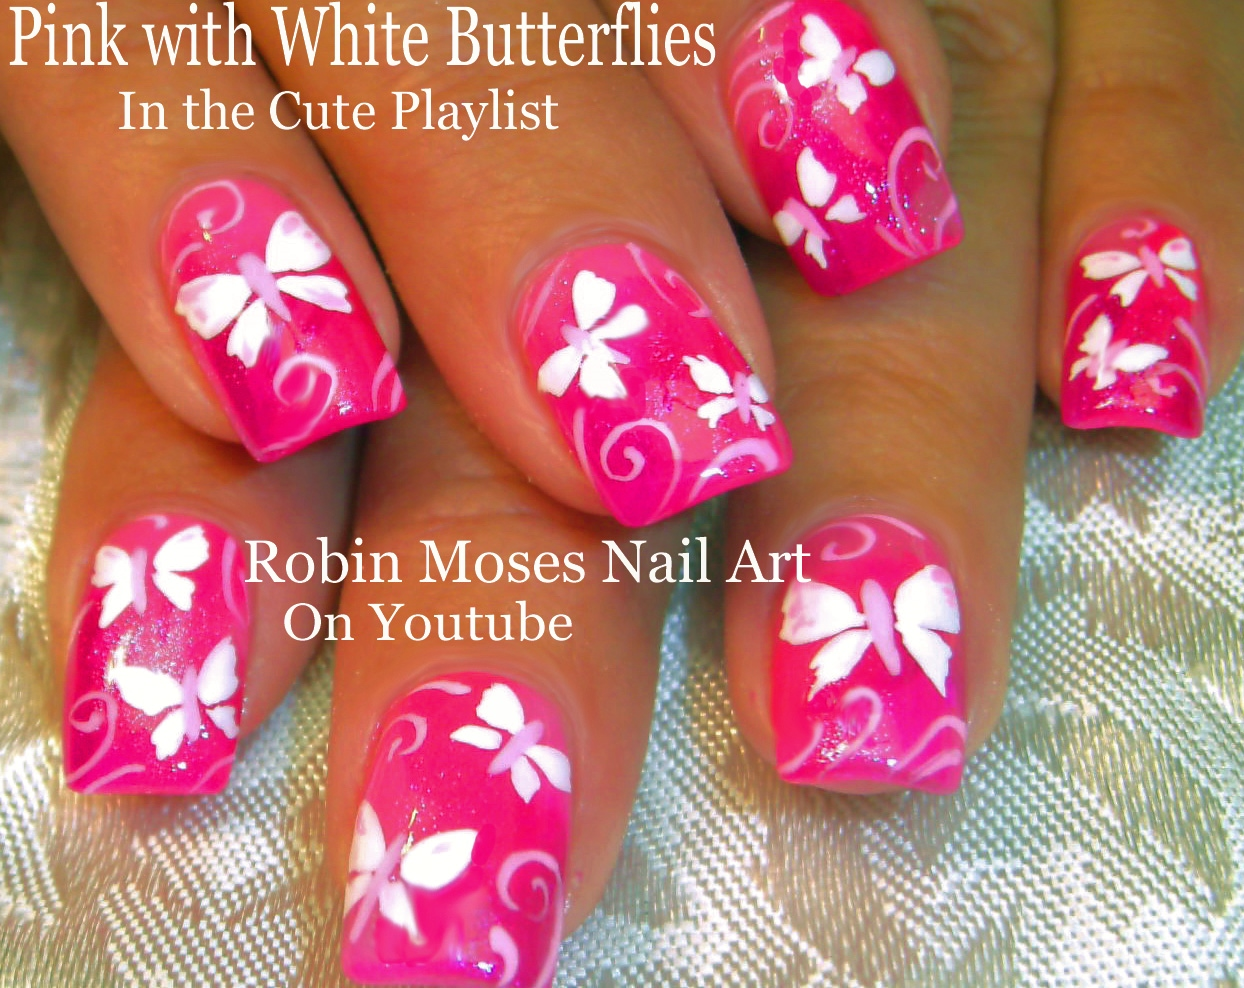 Nail Art by Robin Moses: August 2015